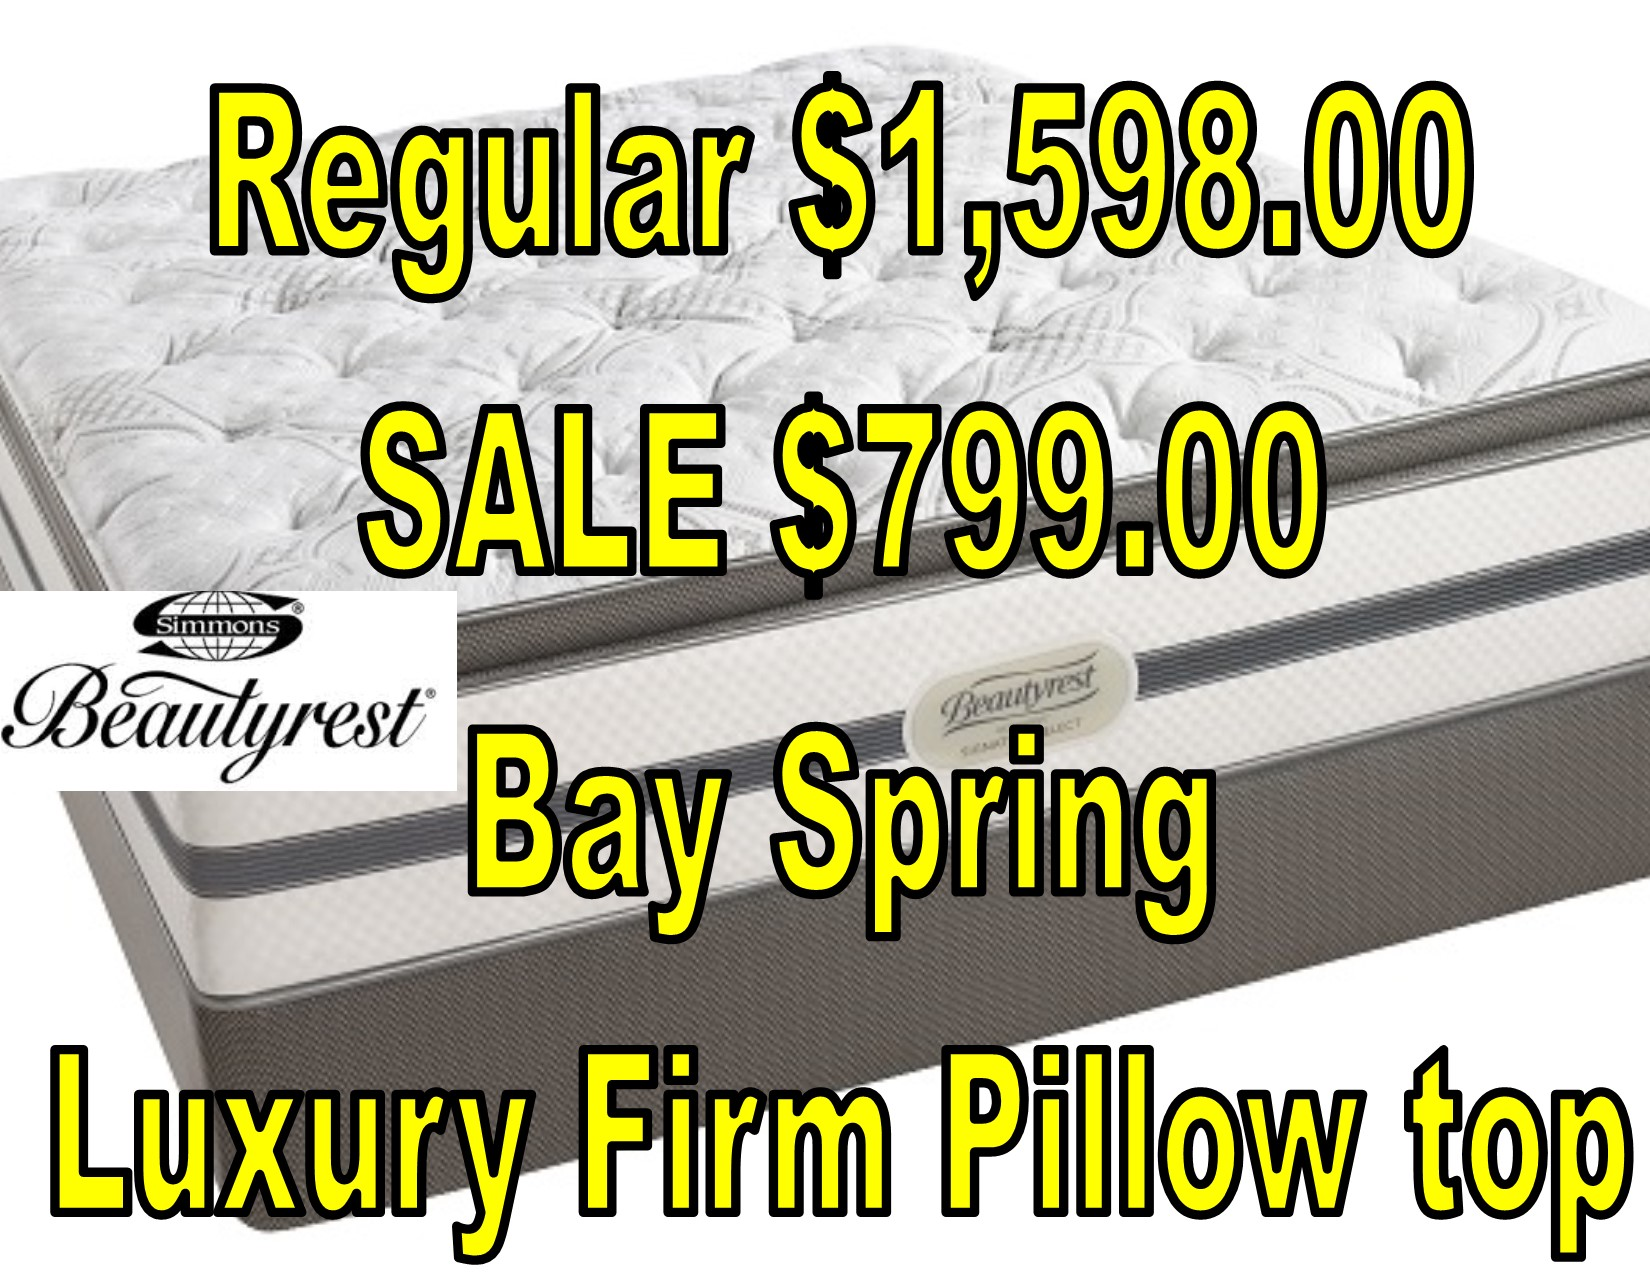 Mattress Deals image 63